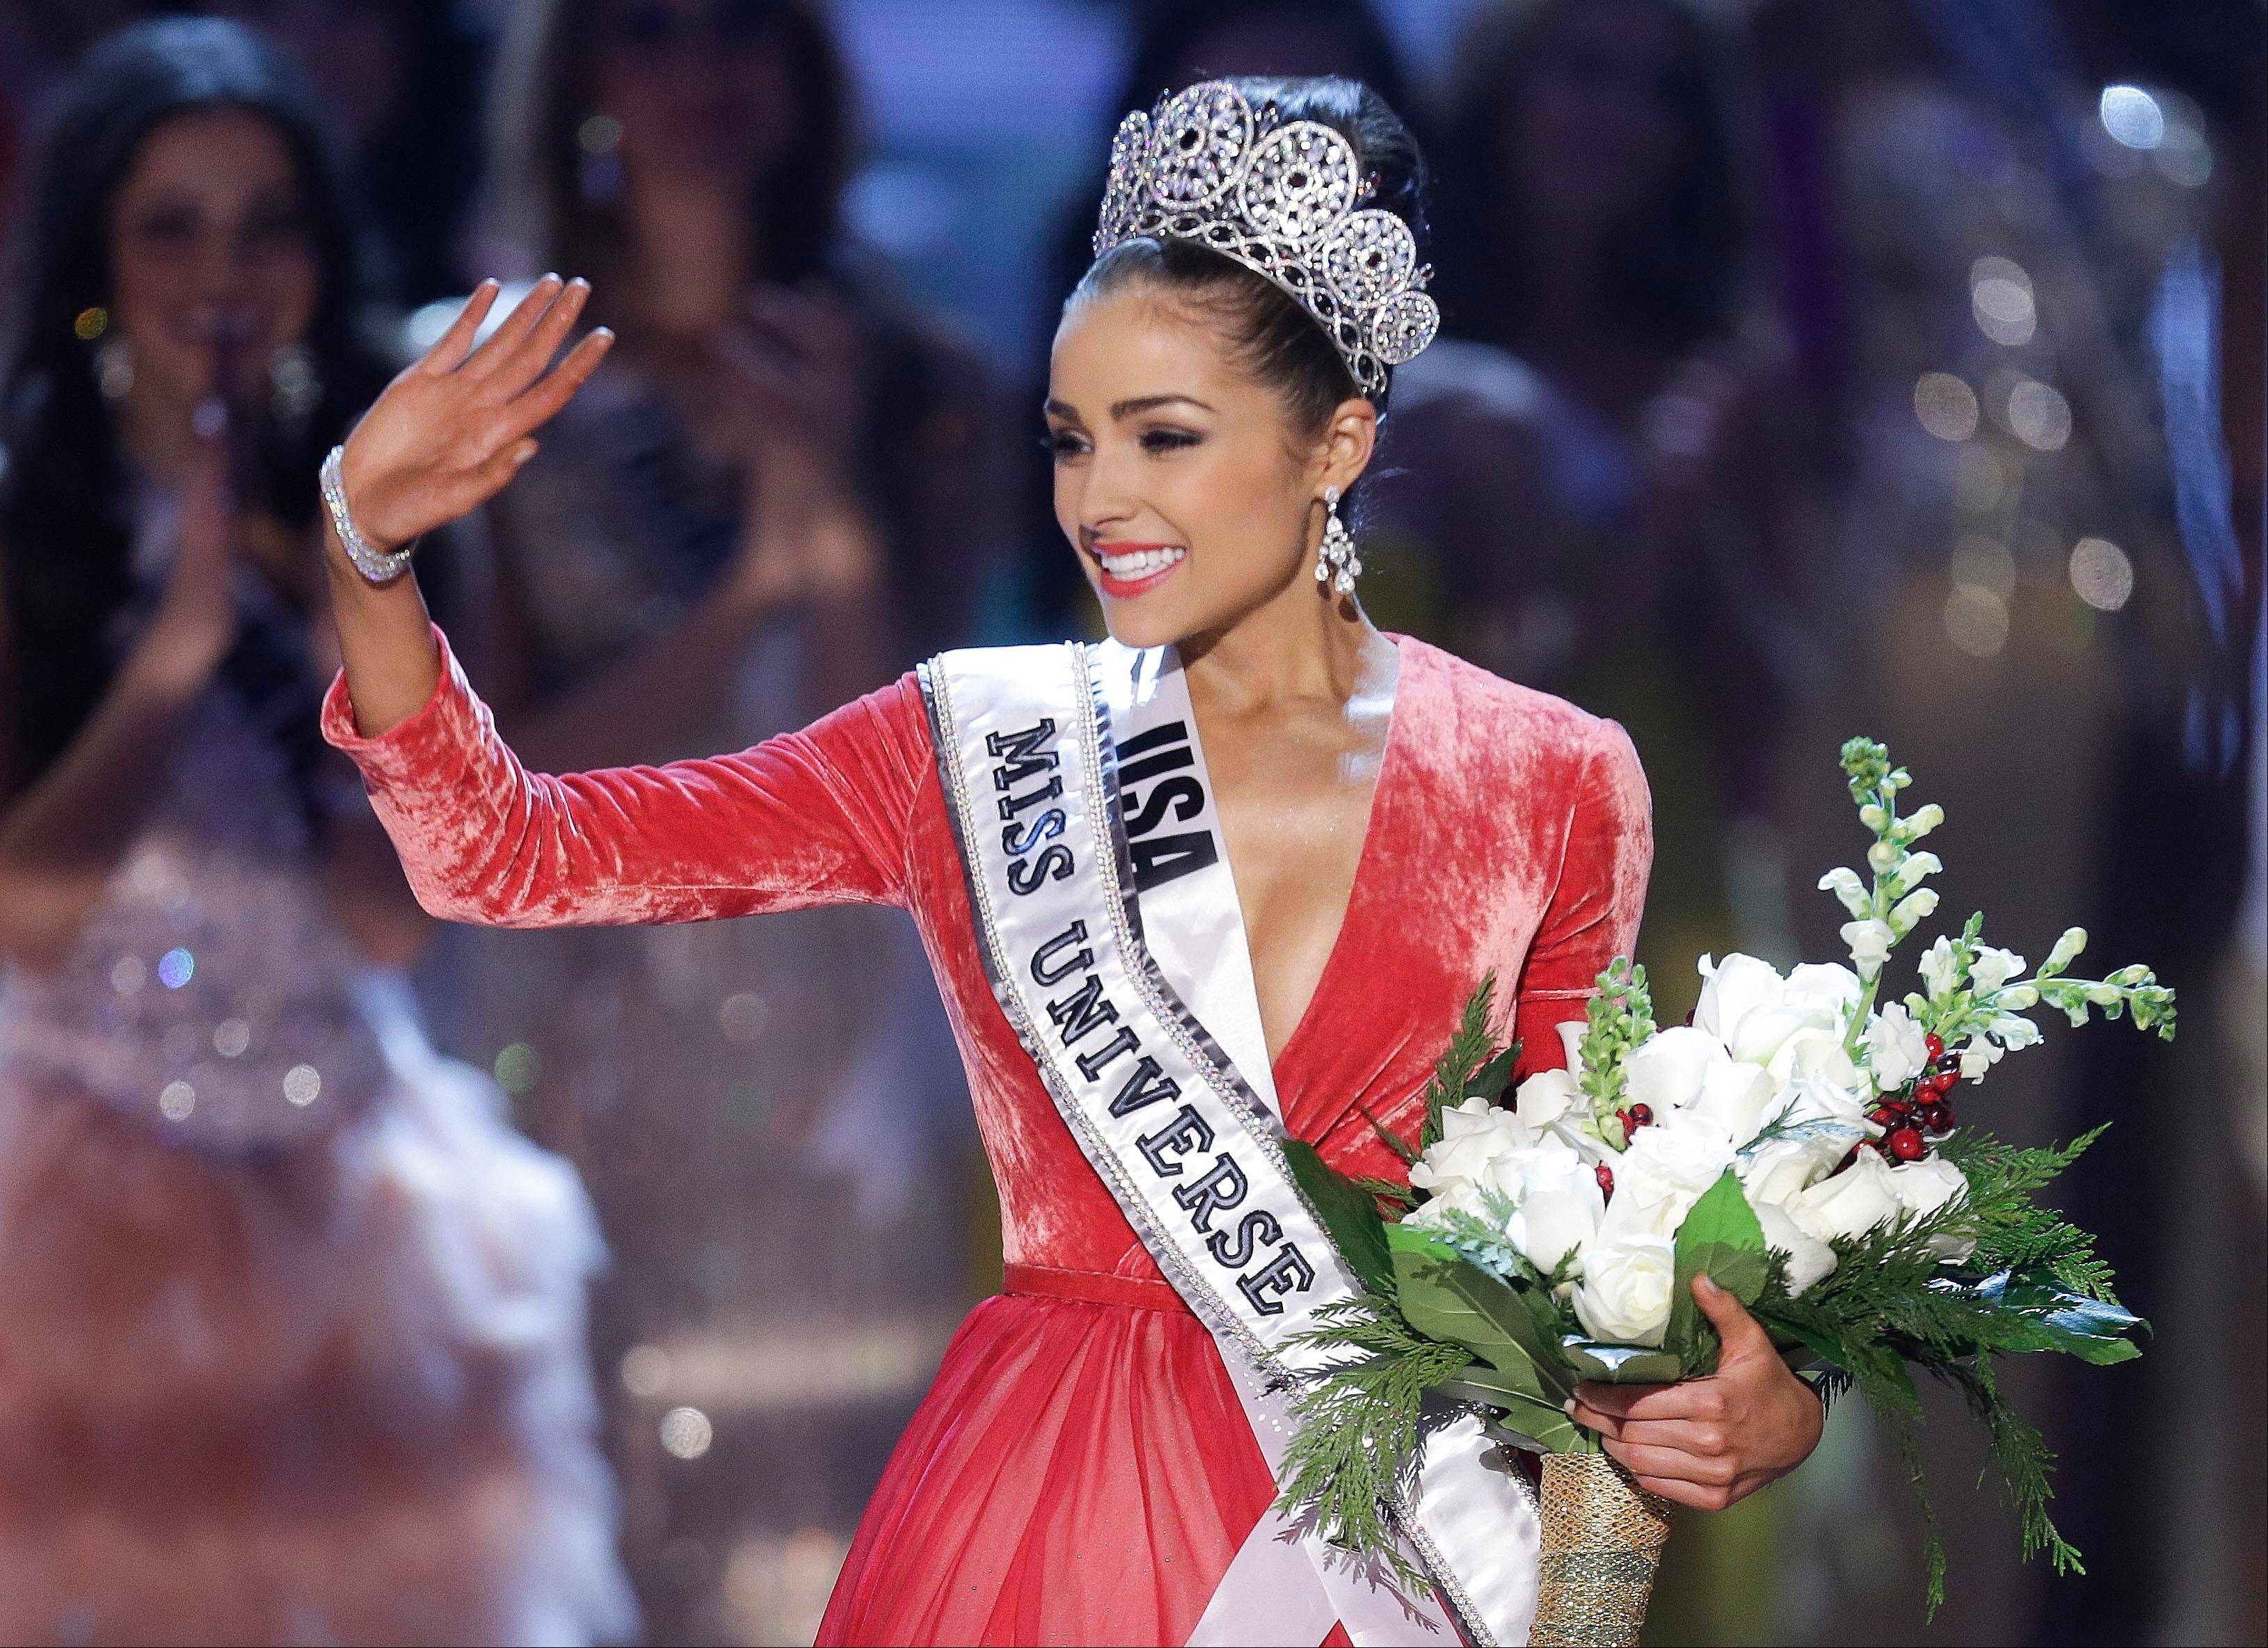 Miss USA Olivia Culpo waves to the crowd after being crowned as Miss Universe during the Miss Universe competition Wednesday in Las Vegas.